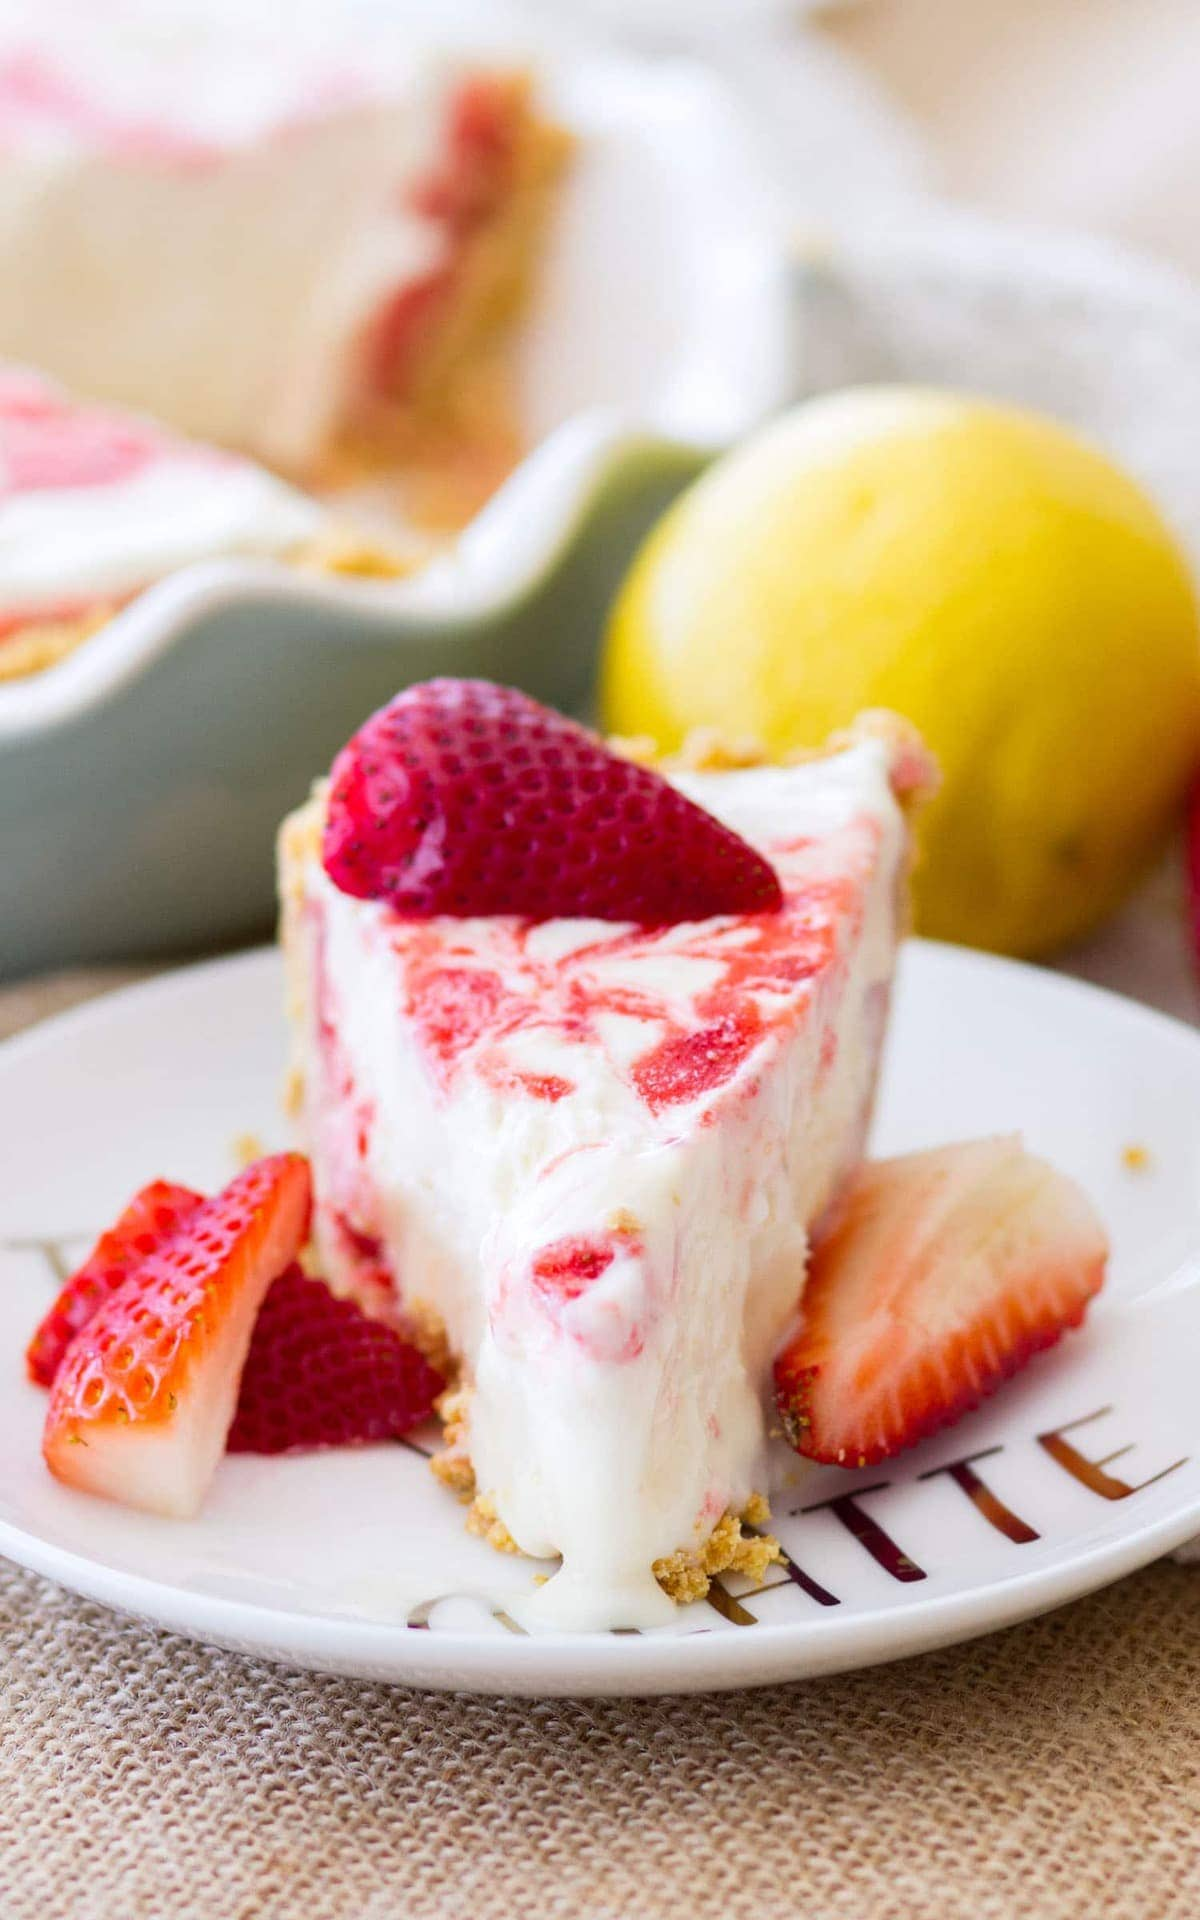 This no-bake Strawberry Lemonade Icebox Pie is sweet, a little tangy, and the perfect no-bake dessert for summer!